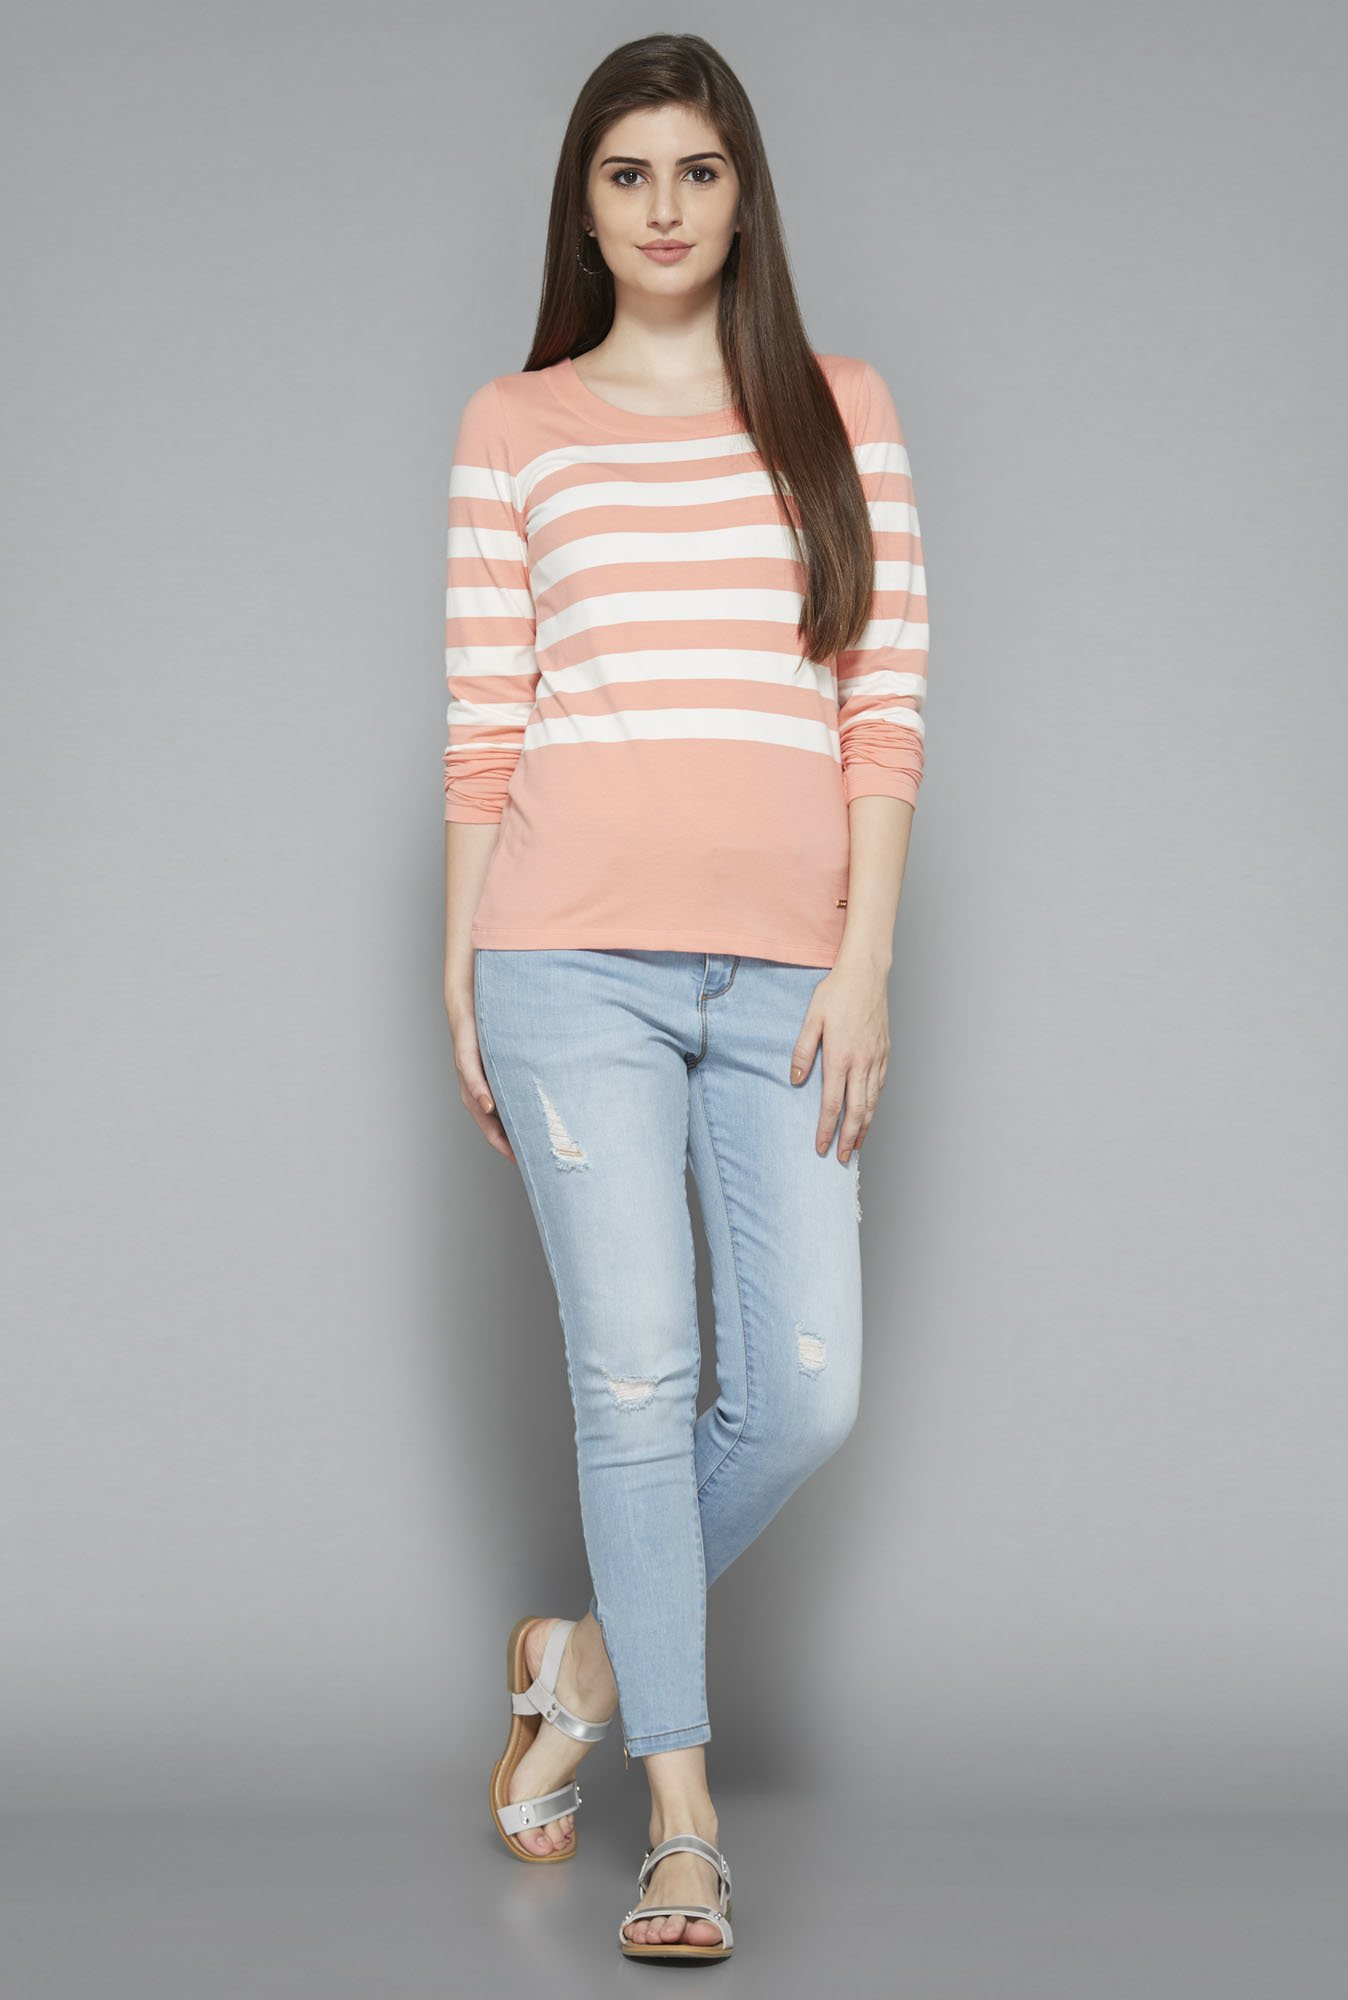 LOV by Westside Peach Striped T Shirt